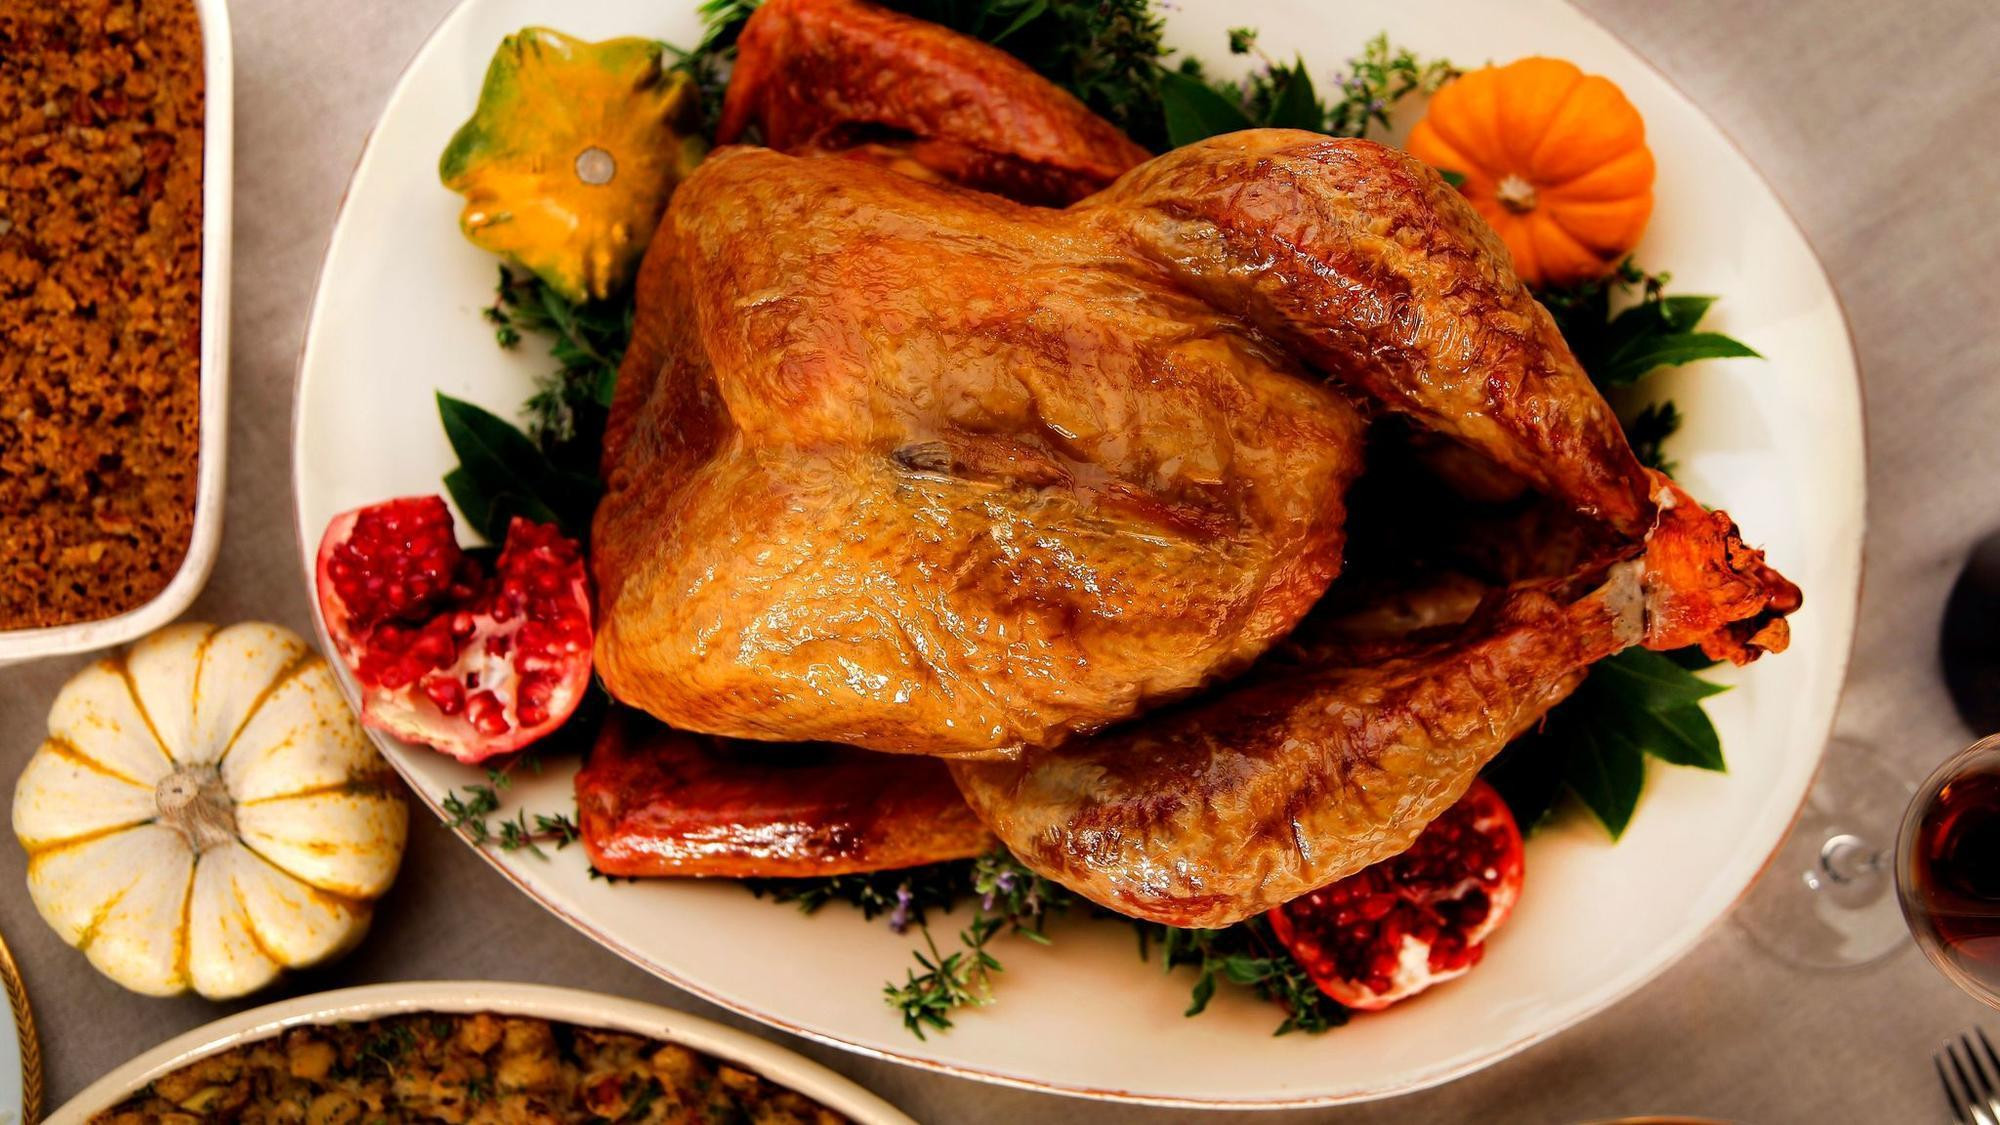 Cooking A Thanksgiving Turkey  Turkey 101 How to cook a Thanksgiving turkey LA Times